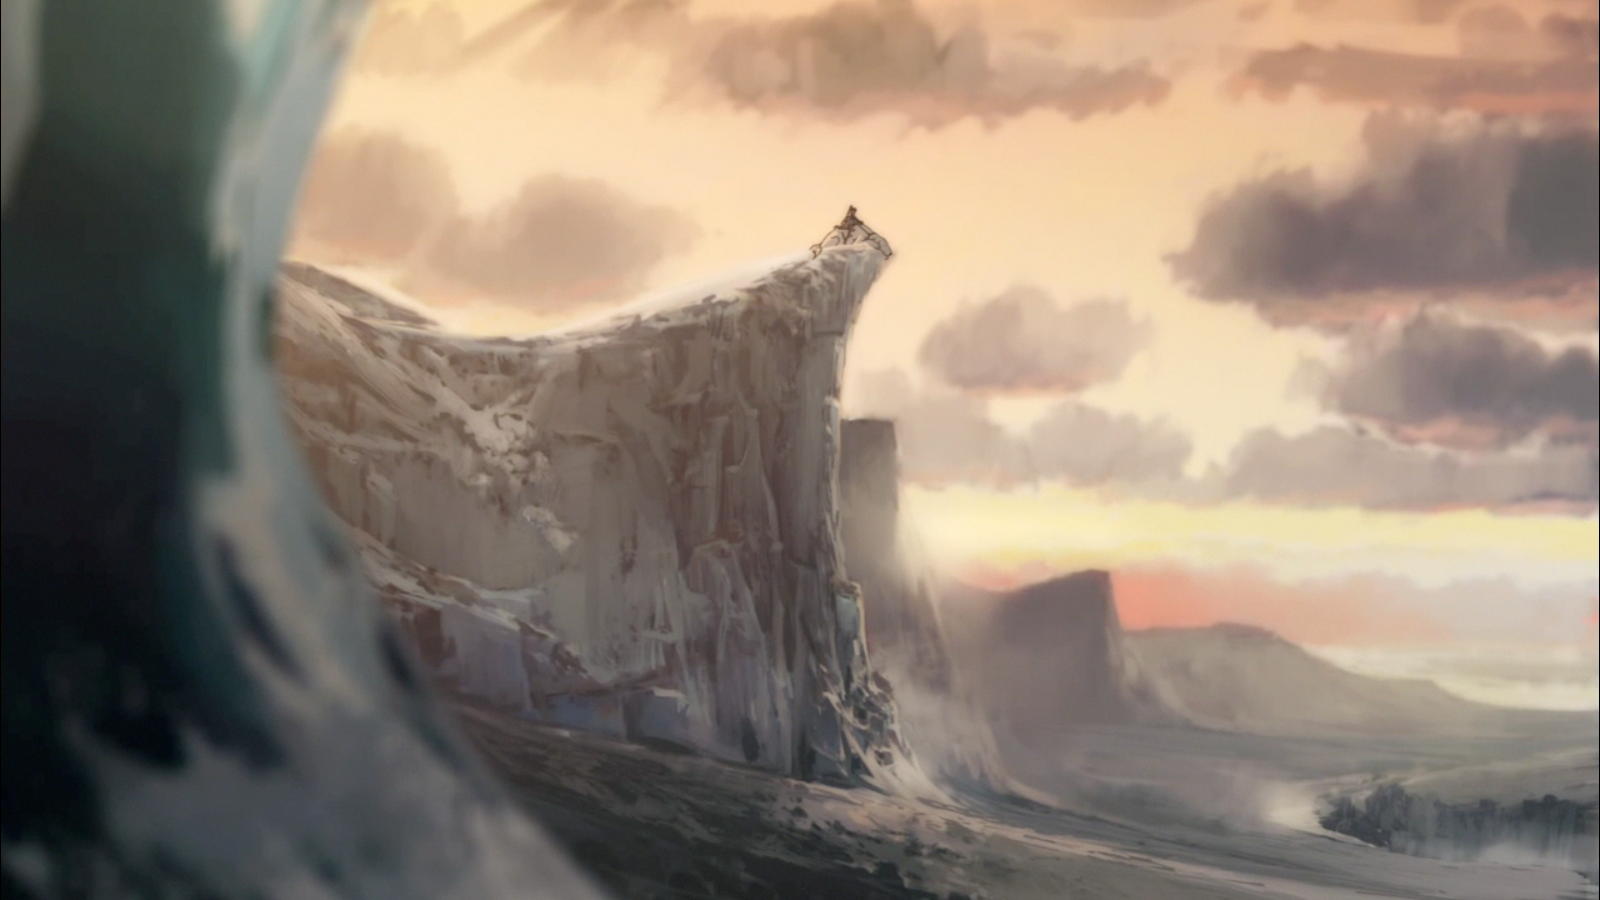 legend of korra background   Google Search Learn to color 1600x900